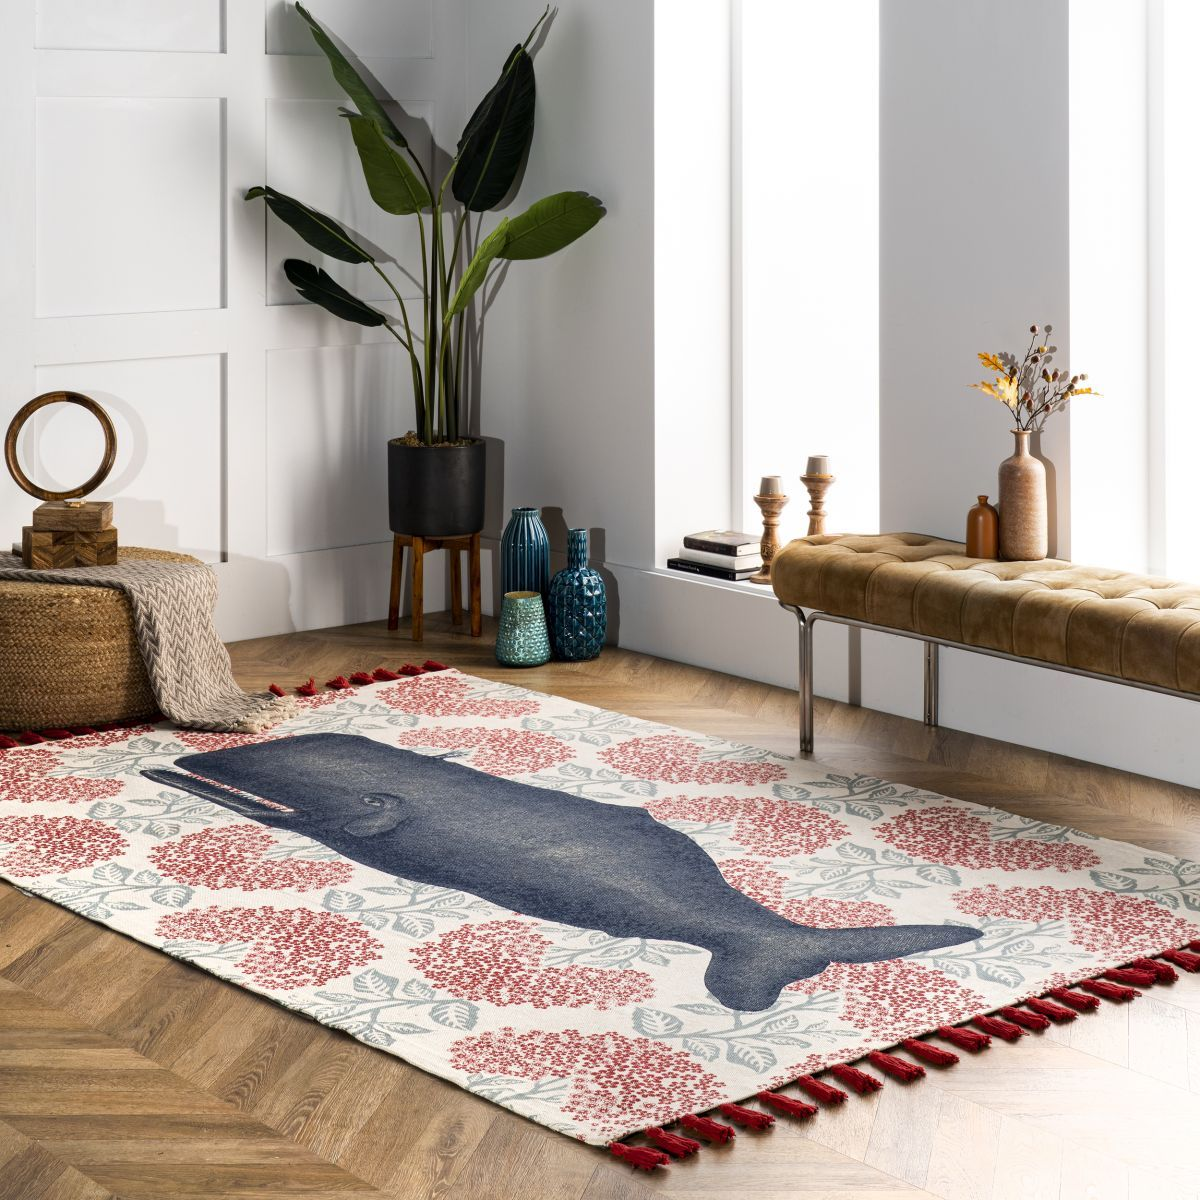 Thomas Paul Printed Flatweave Cotton Fabled Whale Multi Rug